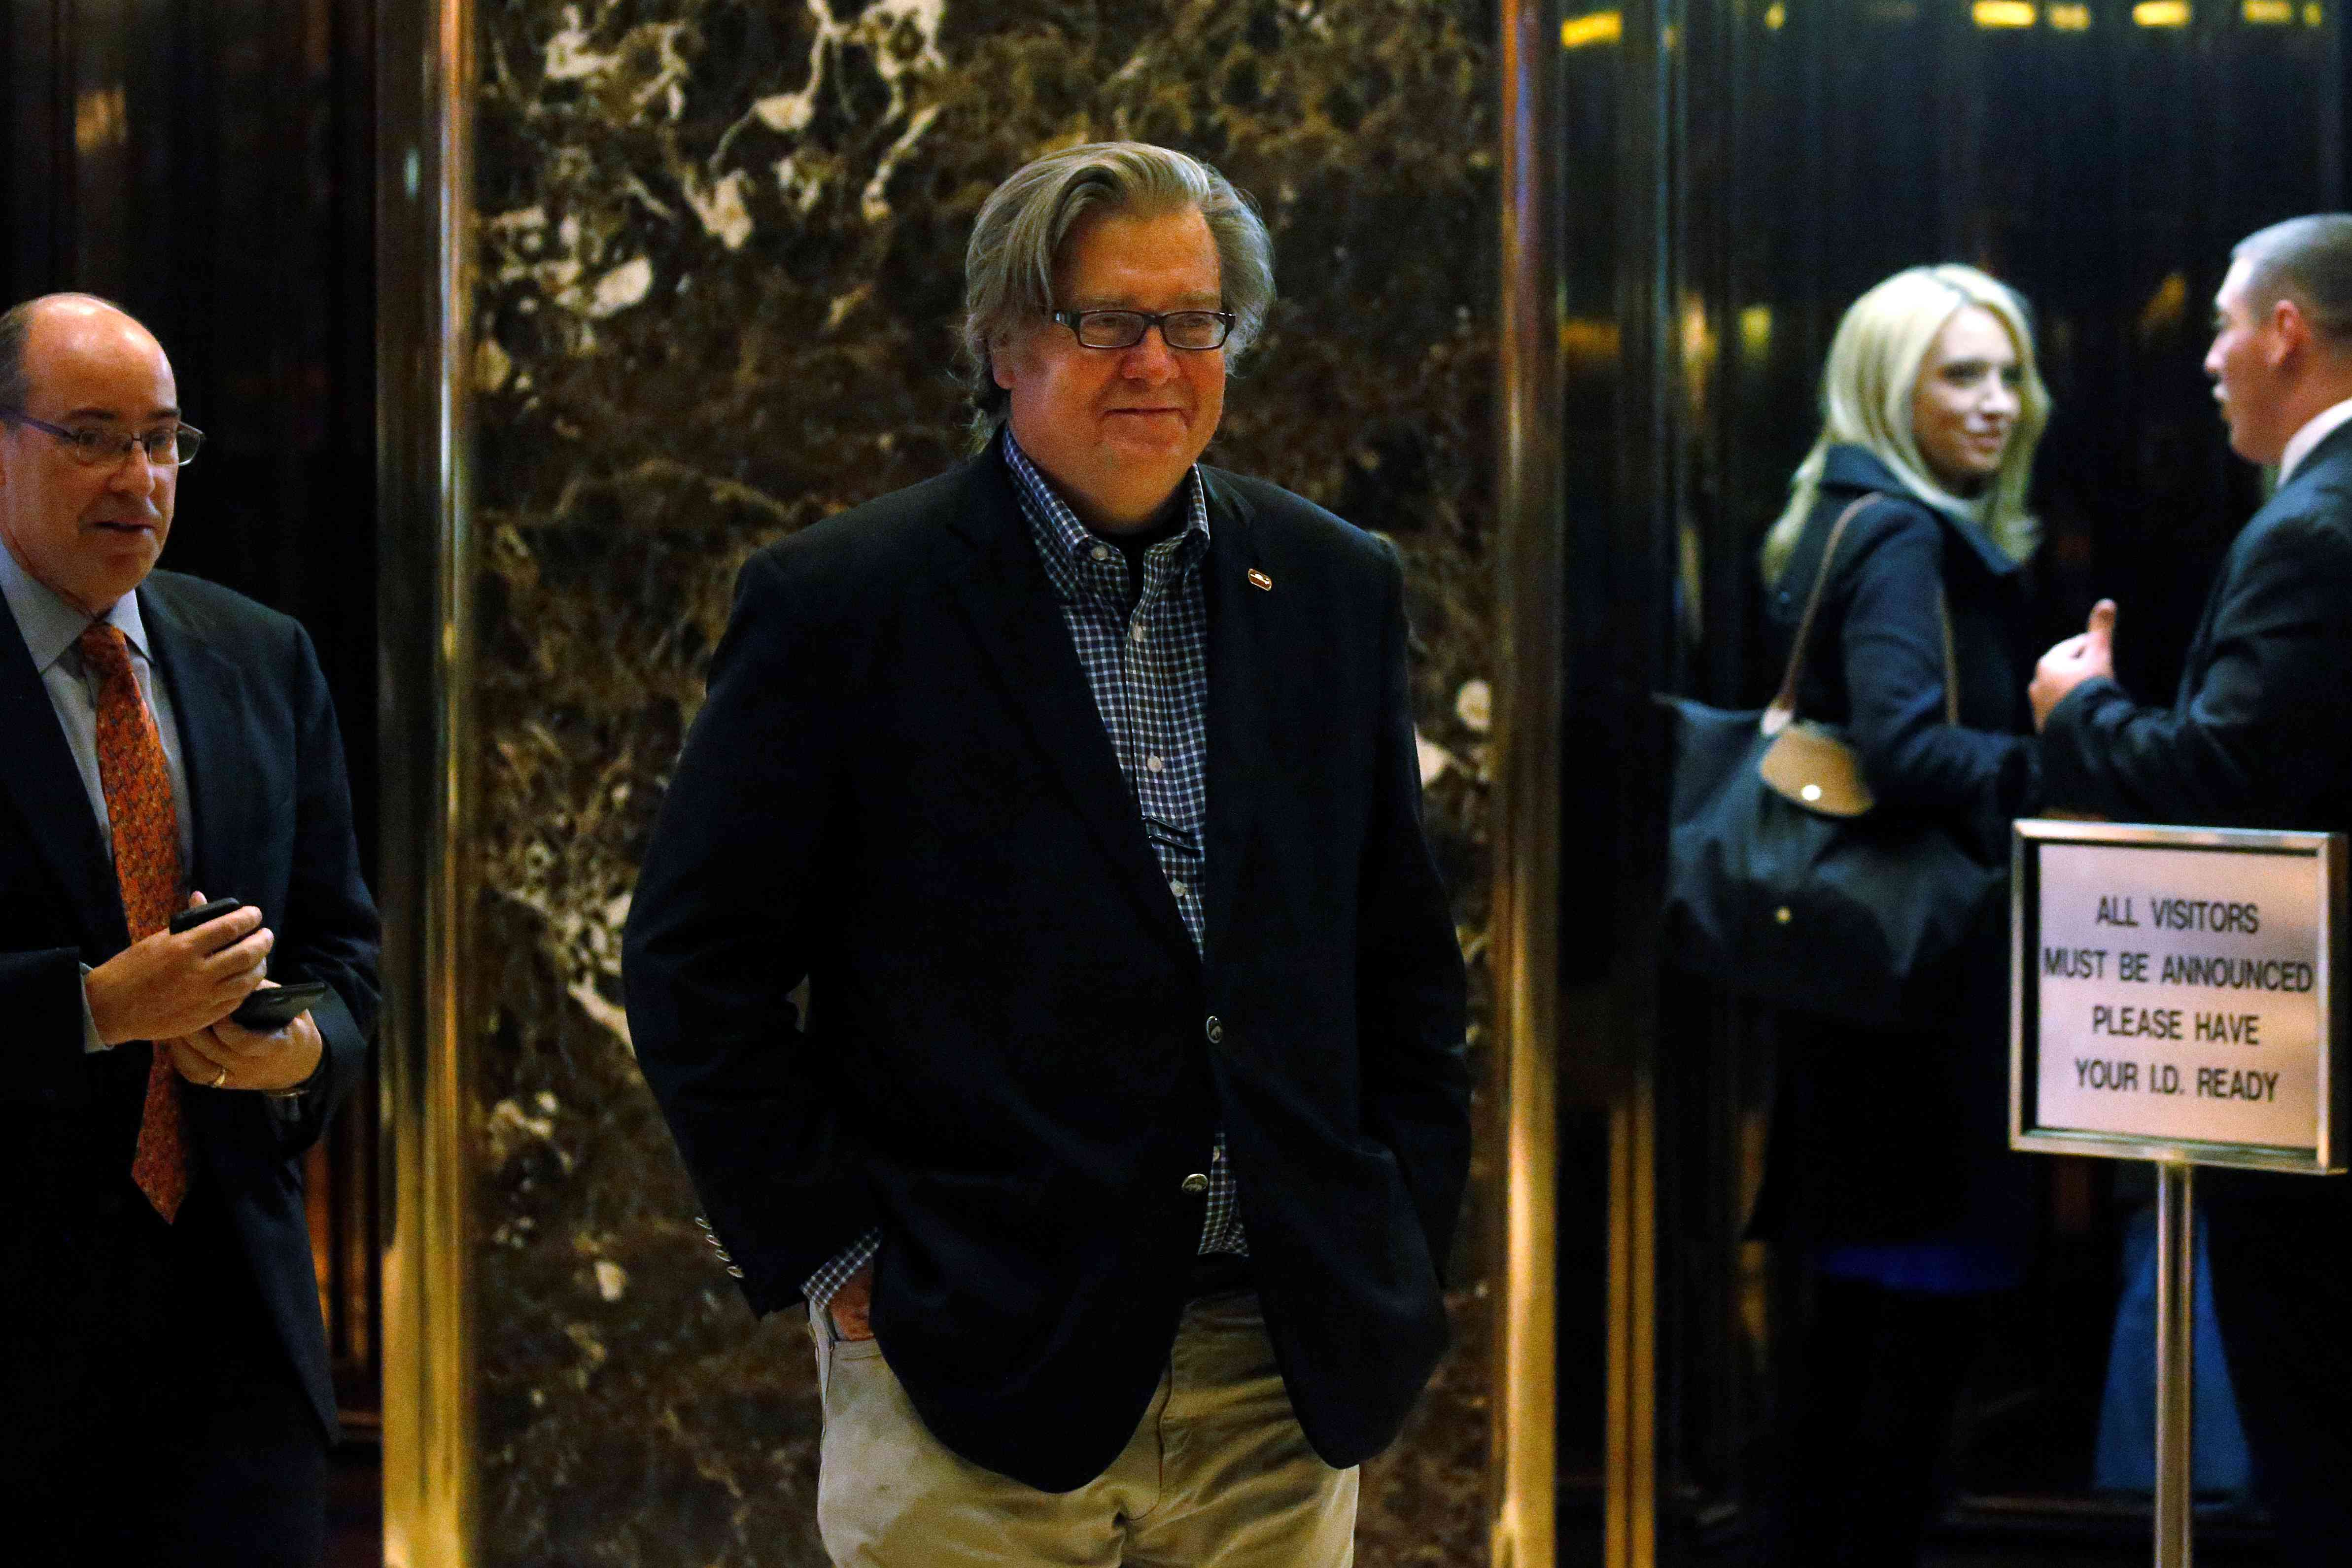 Trump's pick of right-wing firebrand Bannon for White House job sparks outrage